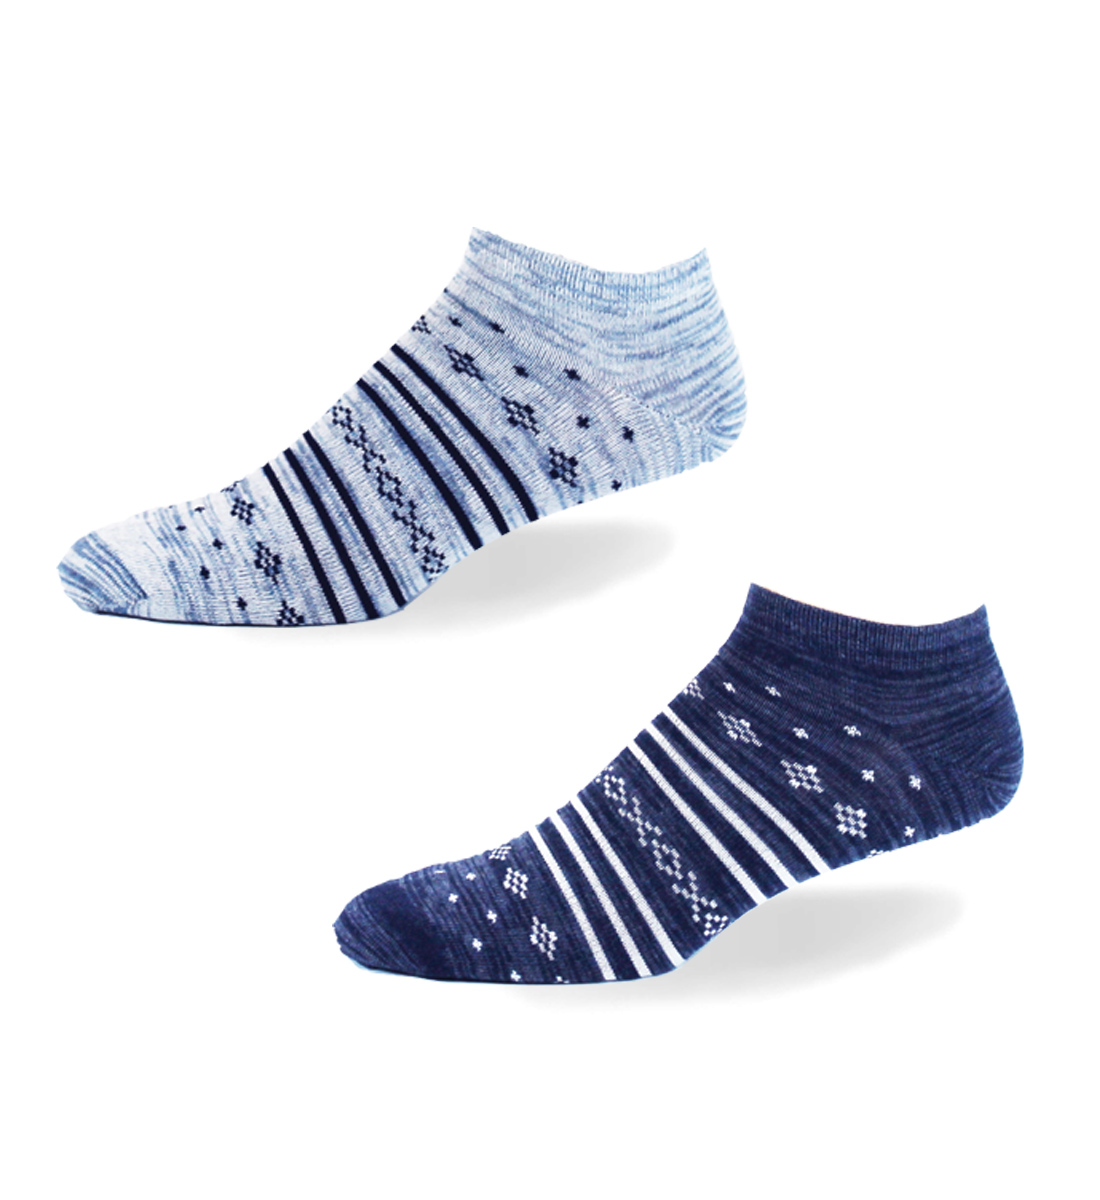 Aztec Patterned Ankle Socks,Denim Front